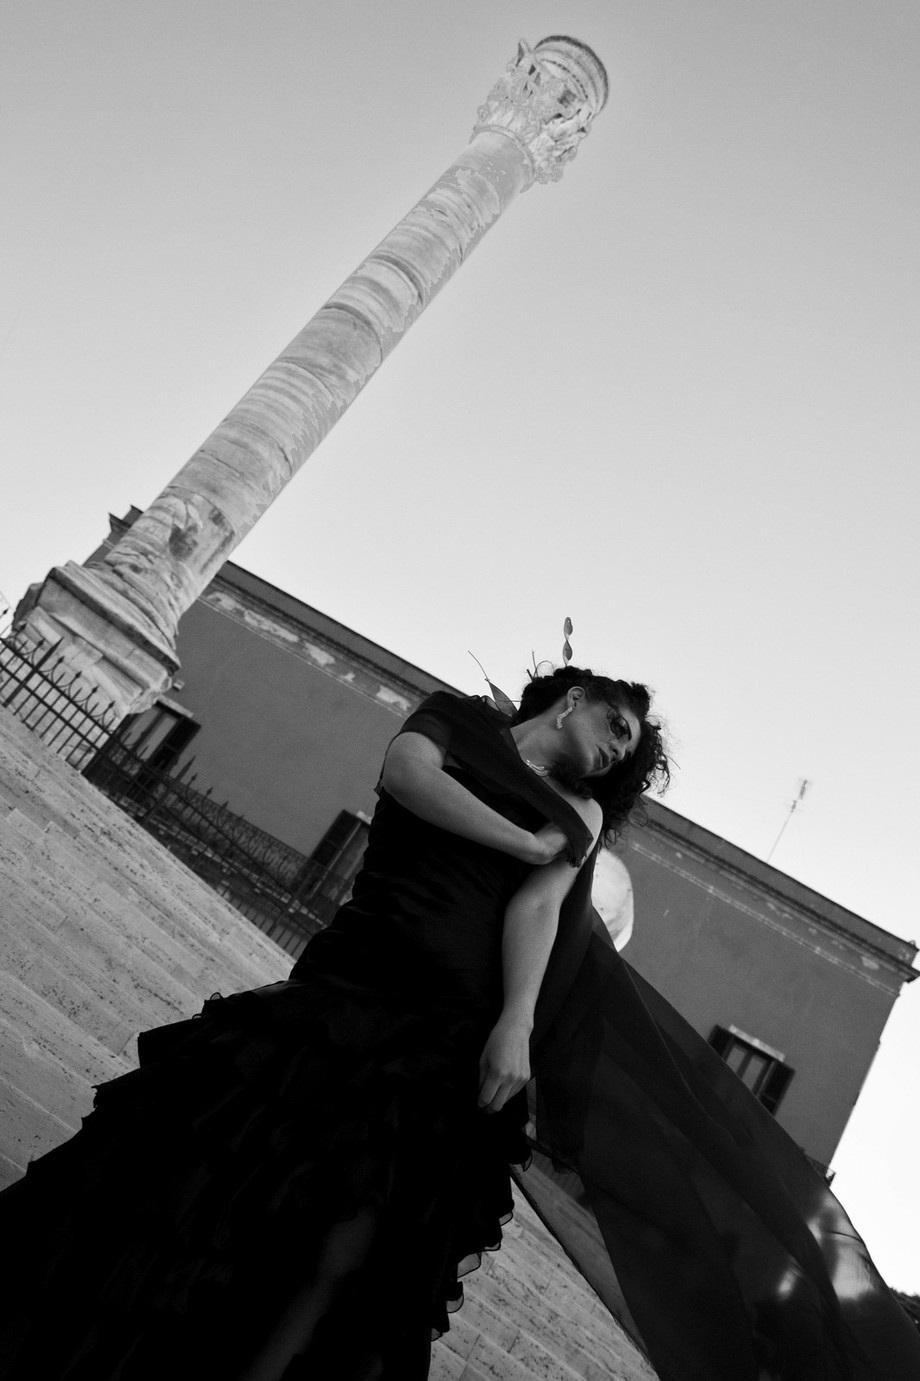 A shot made on the historic flight of steps where Virgil died. A young woman plays with her black dress, throwing it to the wind. Behind there are the Appia's columns